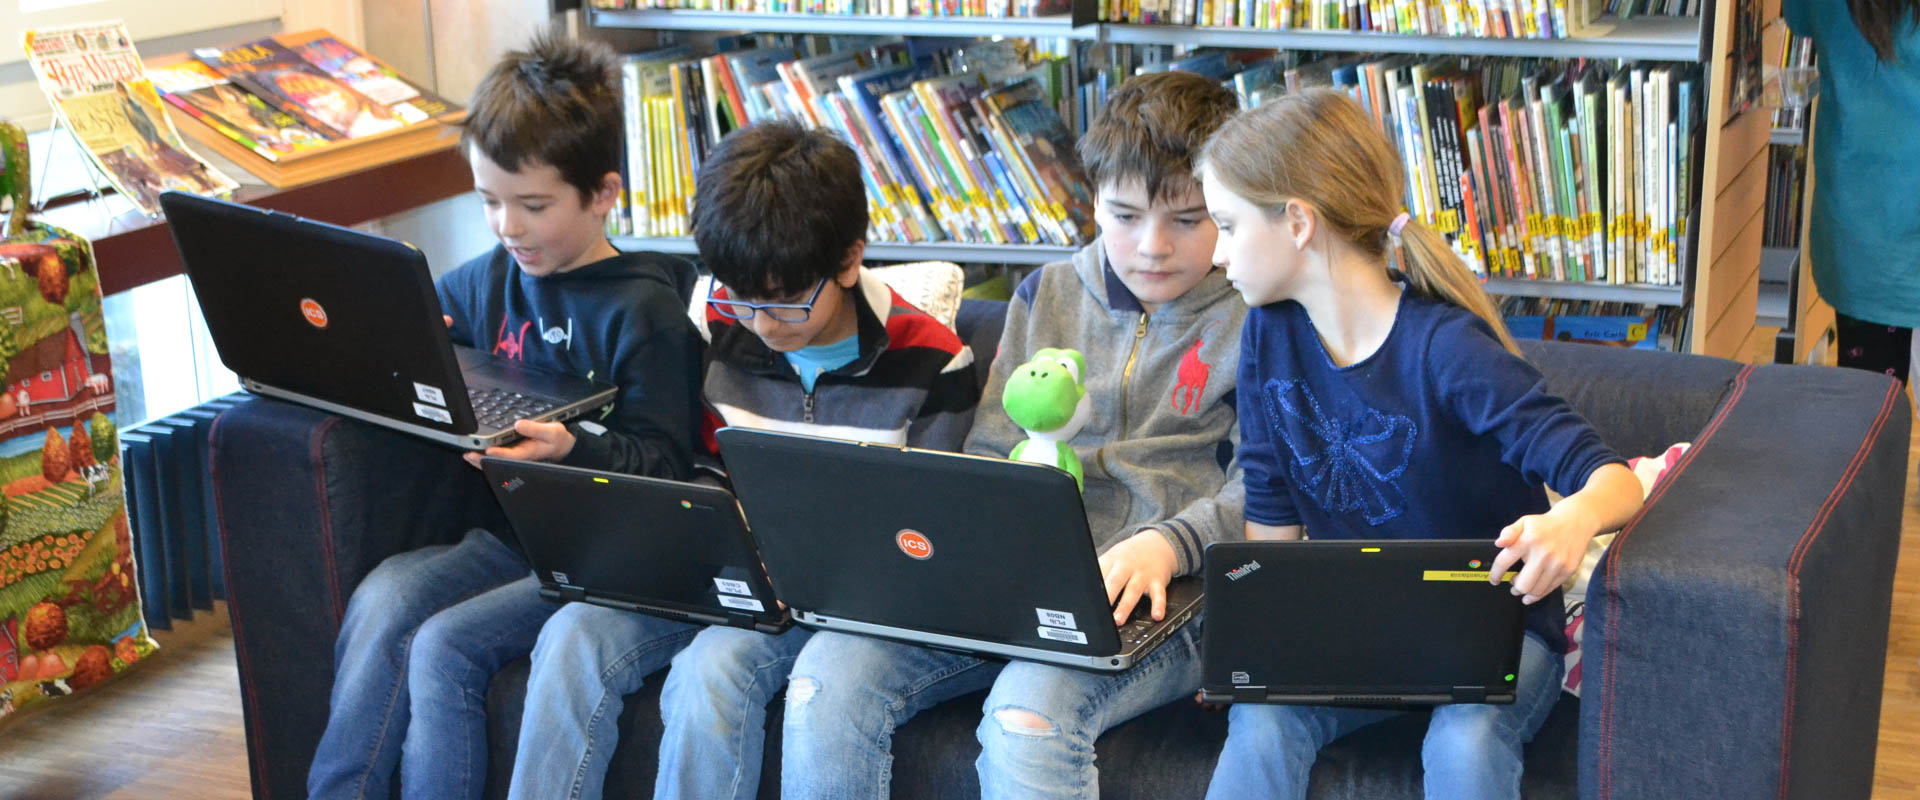 students learning with their laptops at the library and media centre as part of the digital citizenship programme, international school